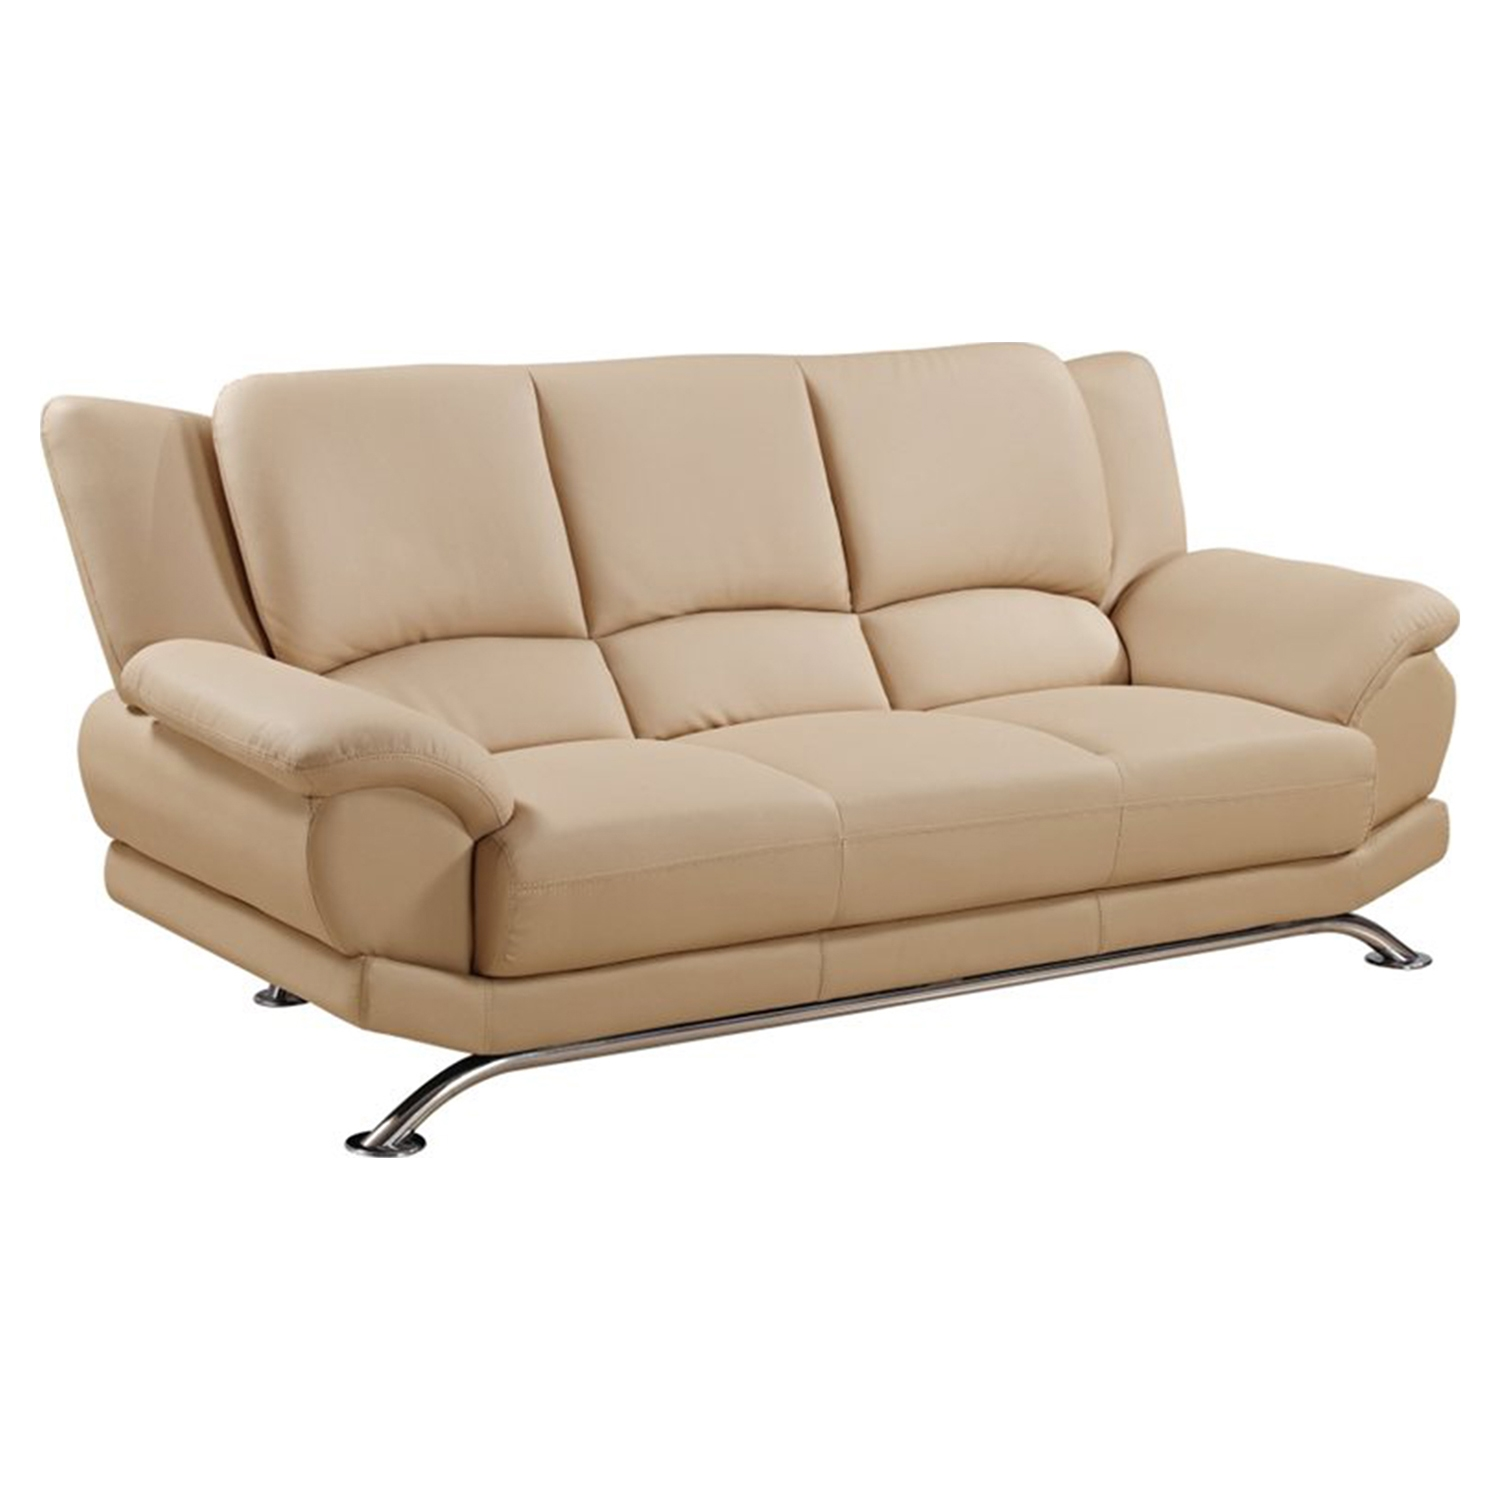 Jesus Leather Sofa in Cappuccino - GLO-U9908-CAP-S-W-LEGS-M